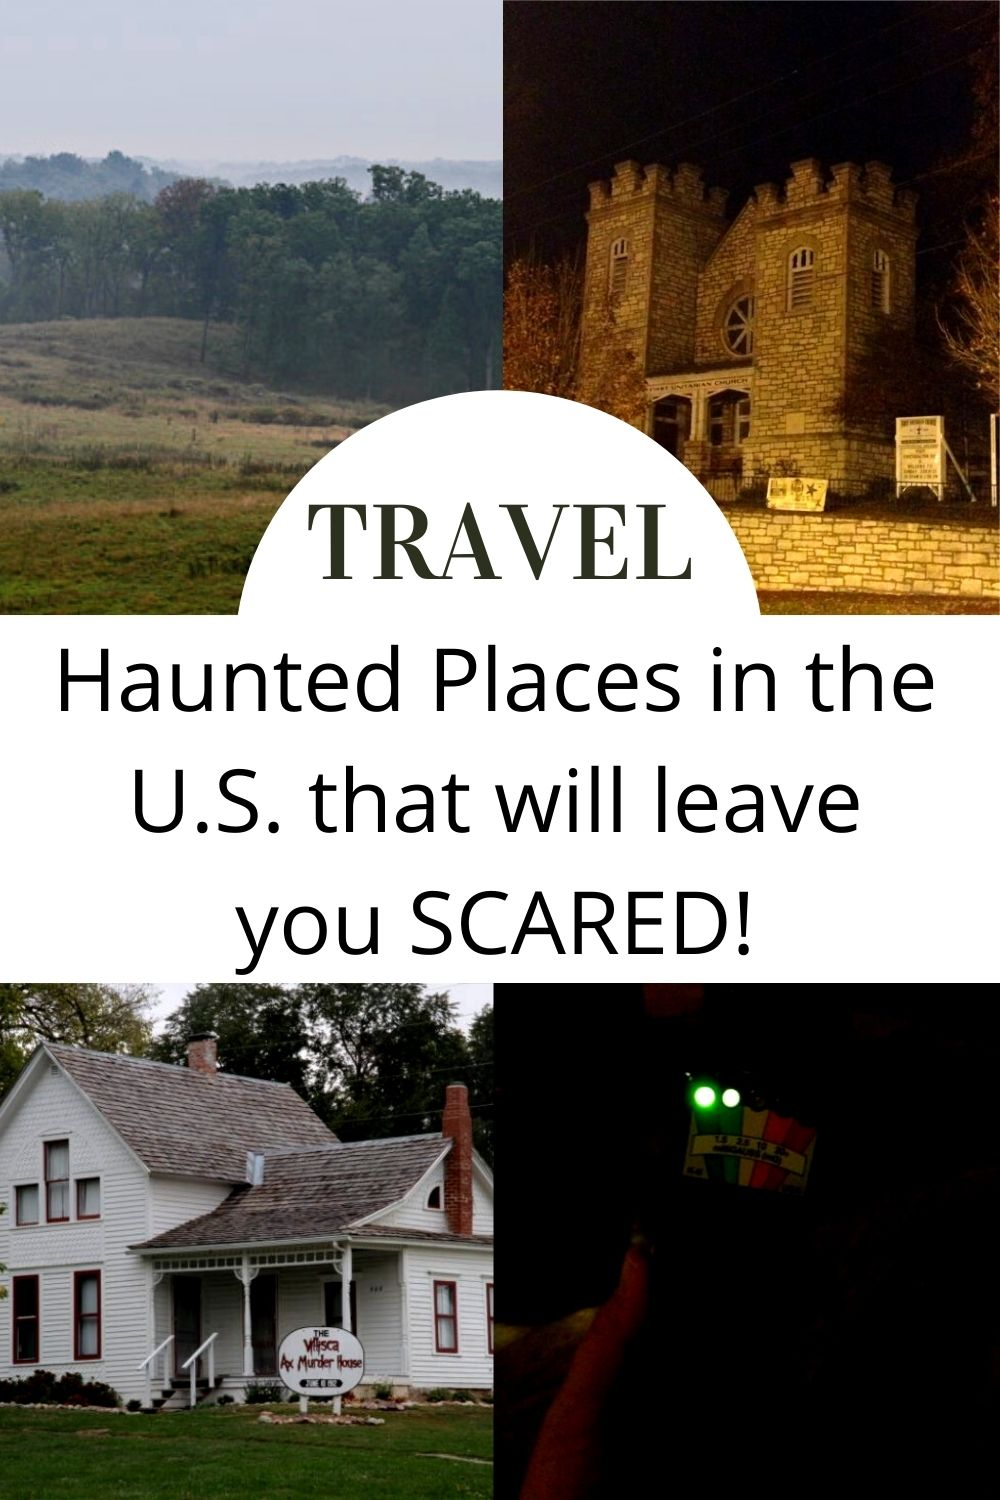 haunted places in the U.S.